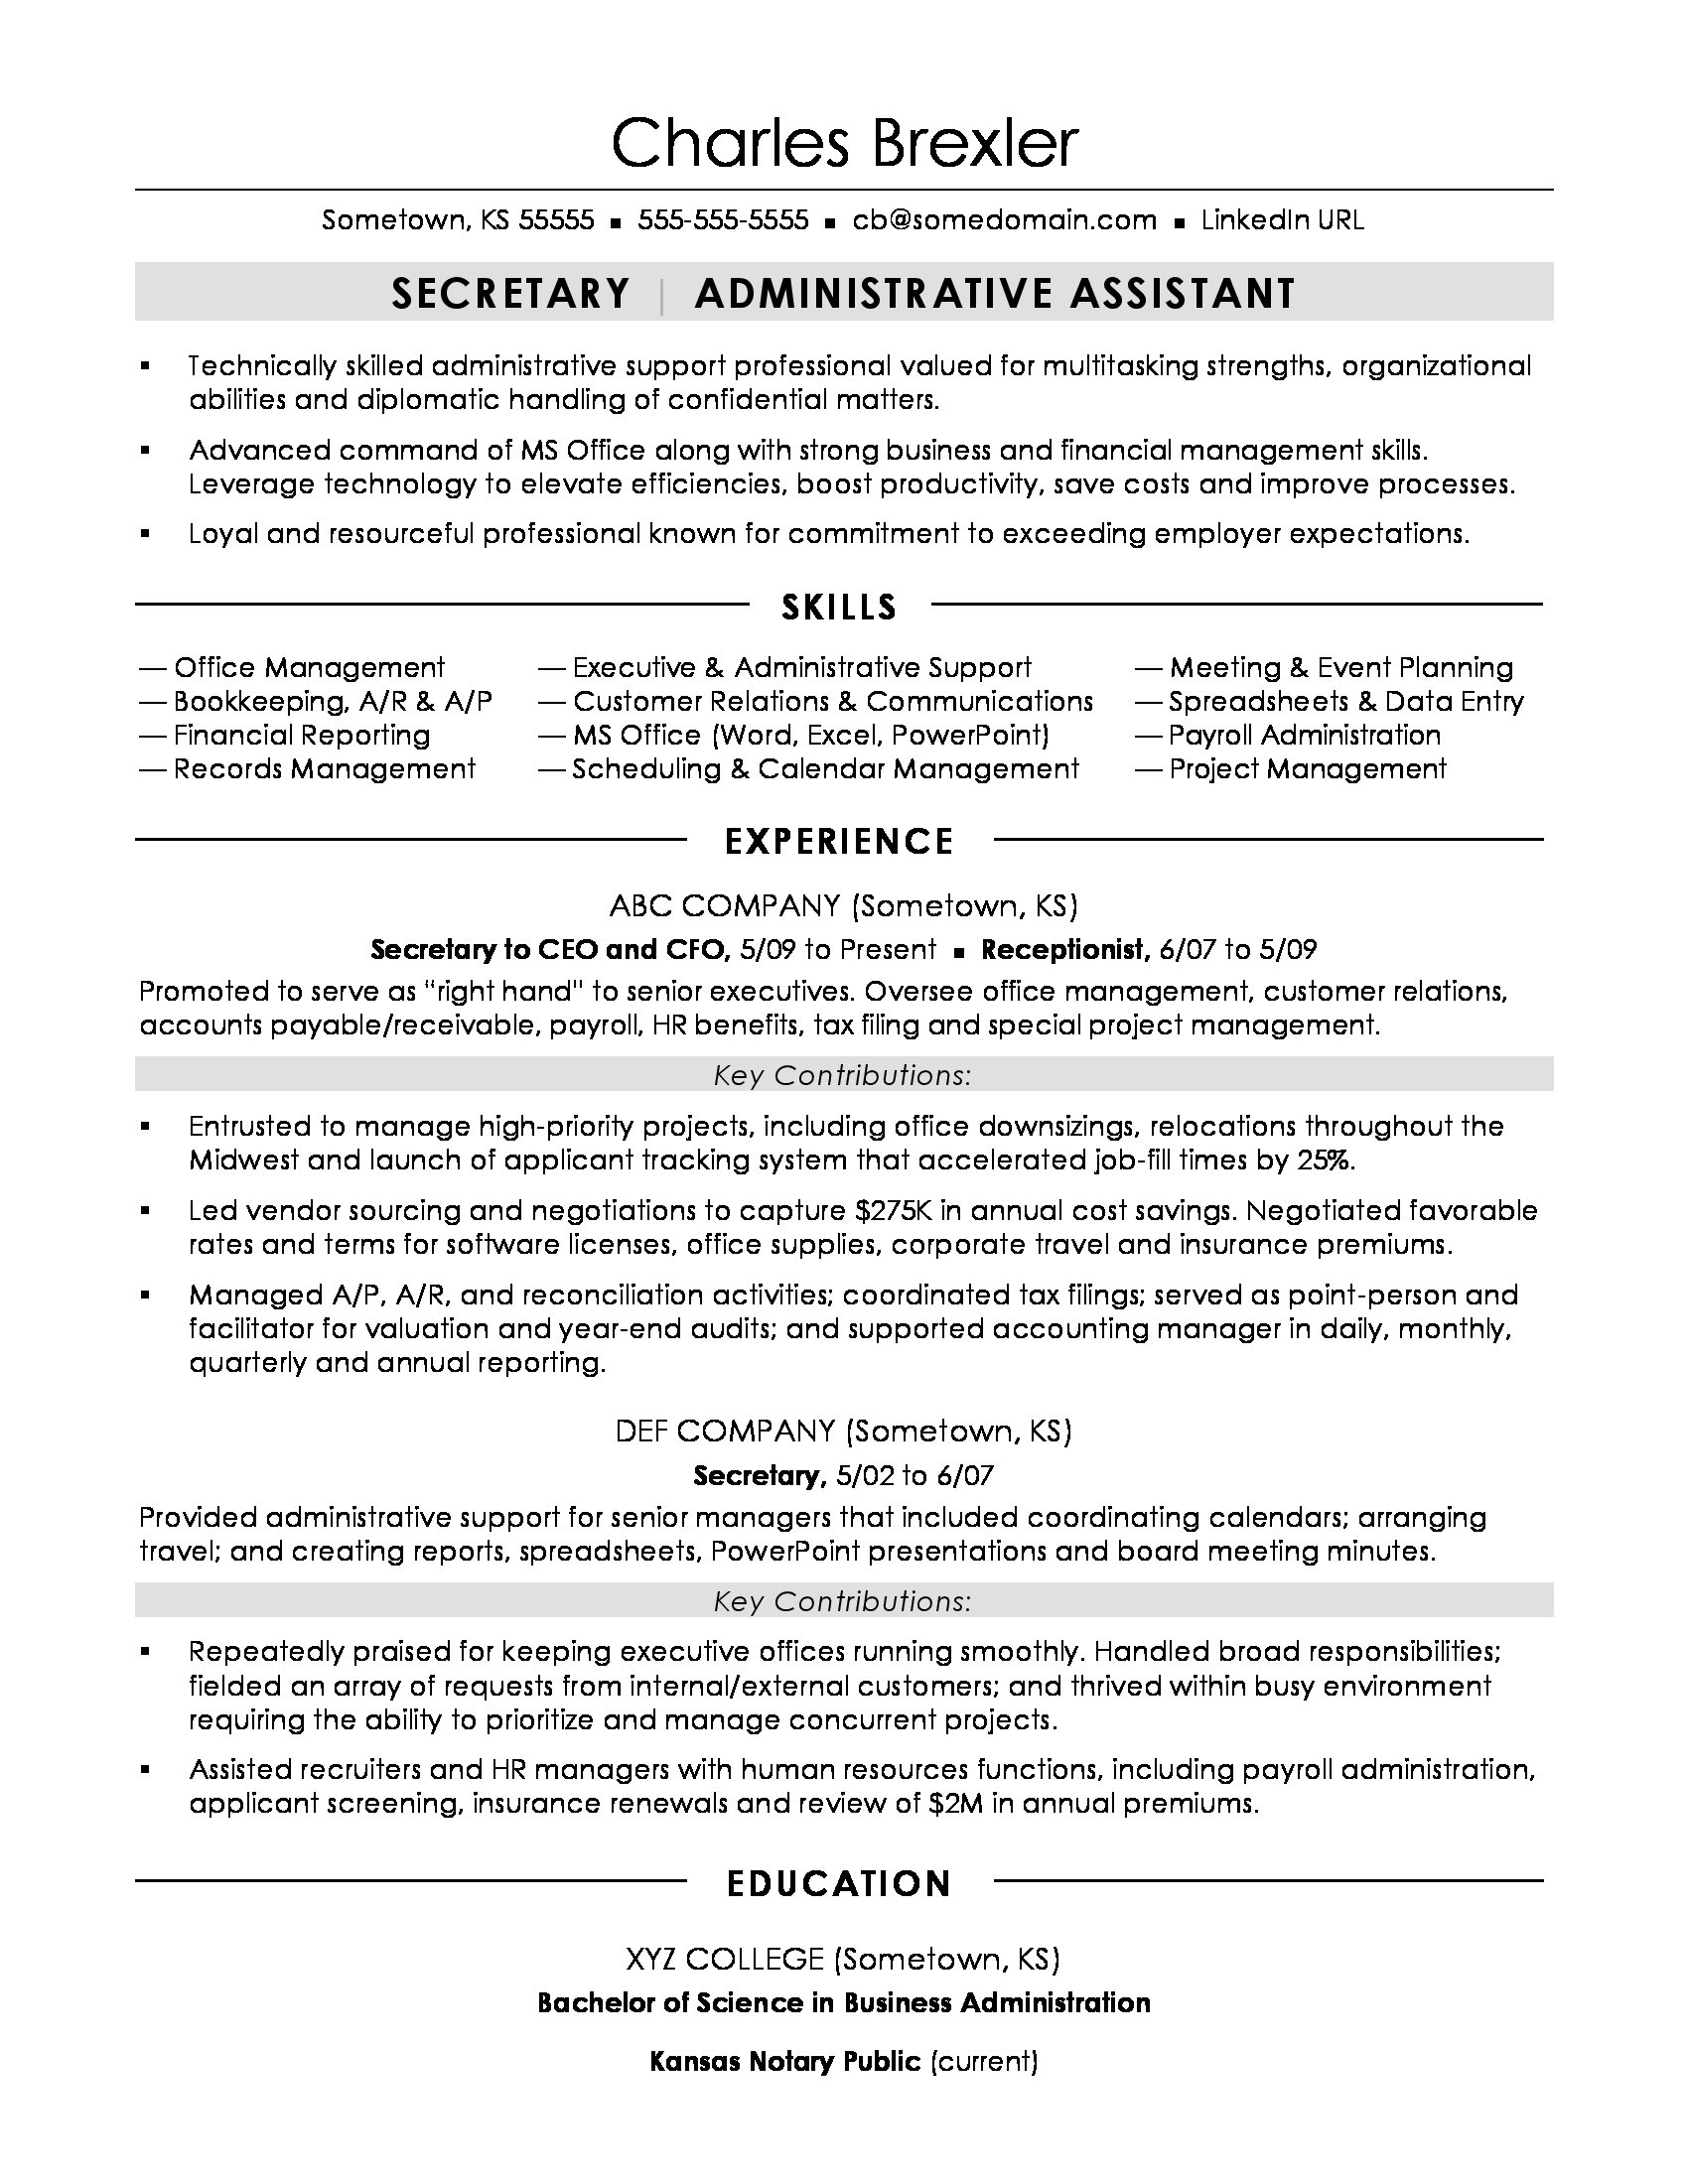 secretary resume sample monster unique strengths for subject line aws certification logo Resume Unique Strengths For Resume